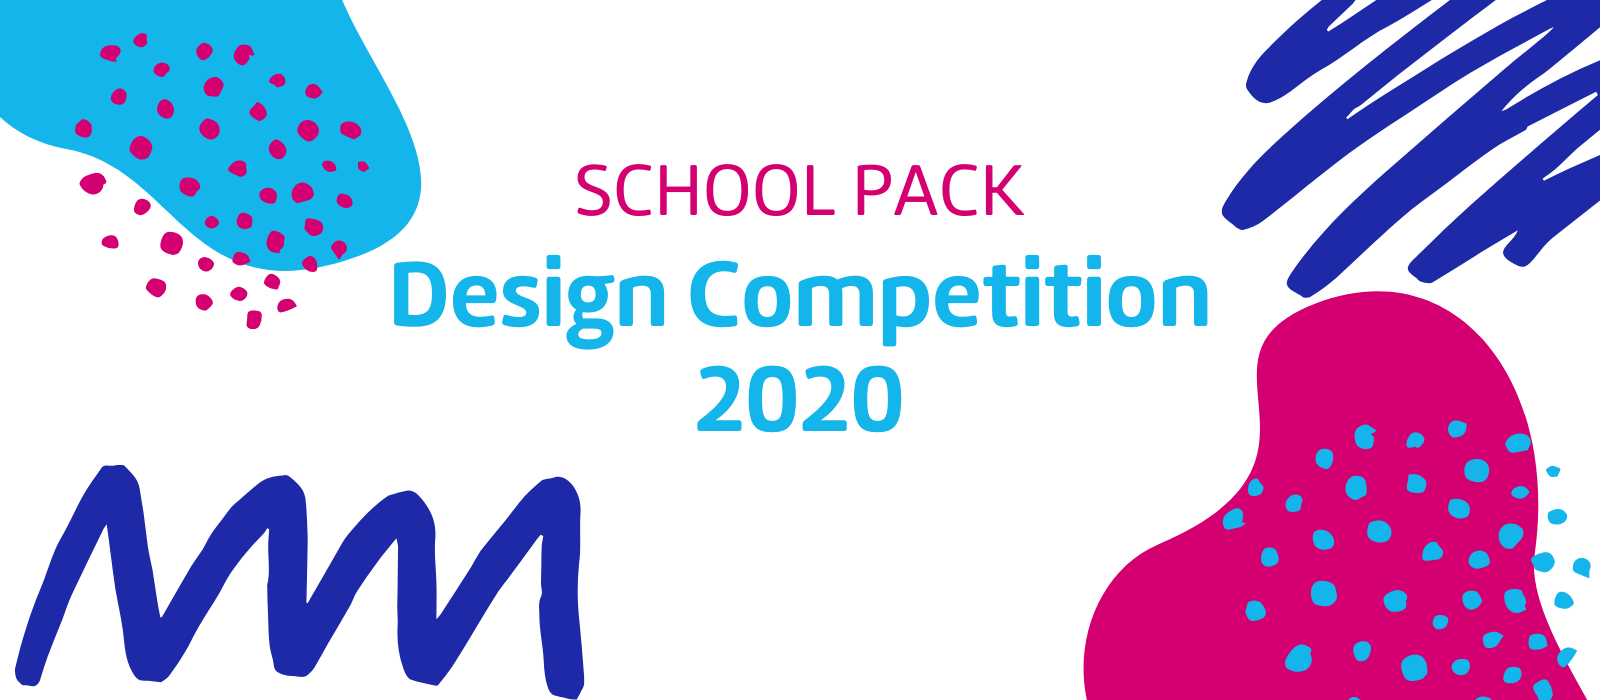 School Pack Design Competition